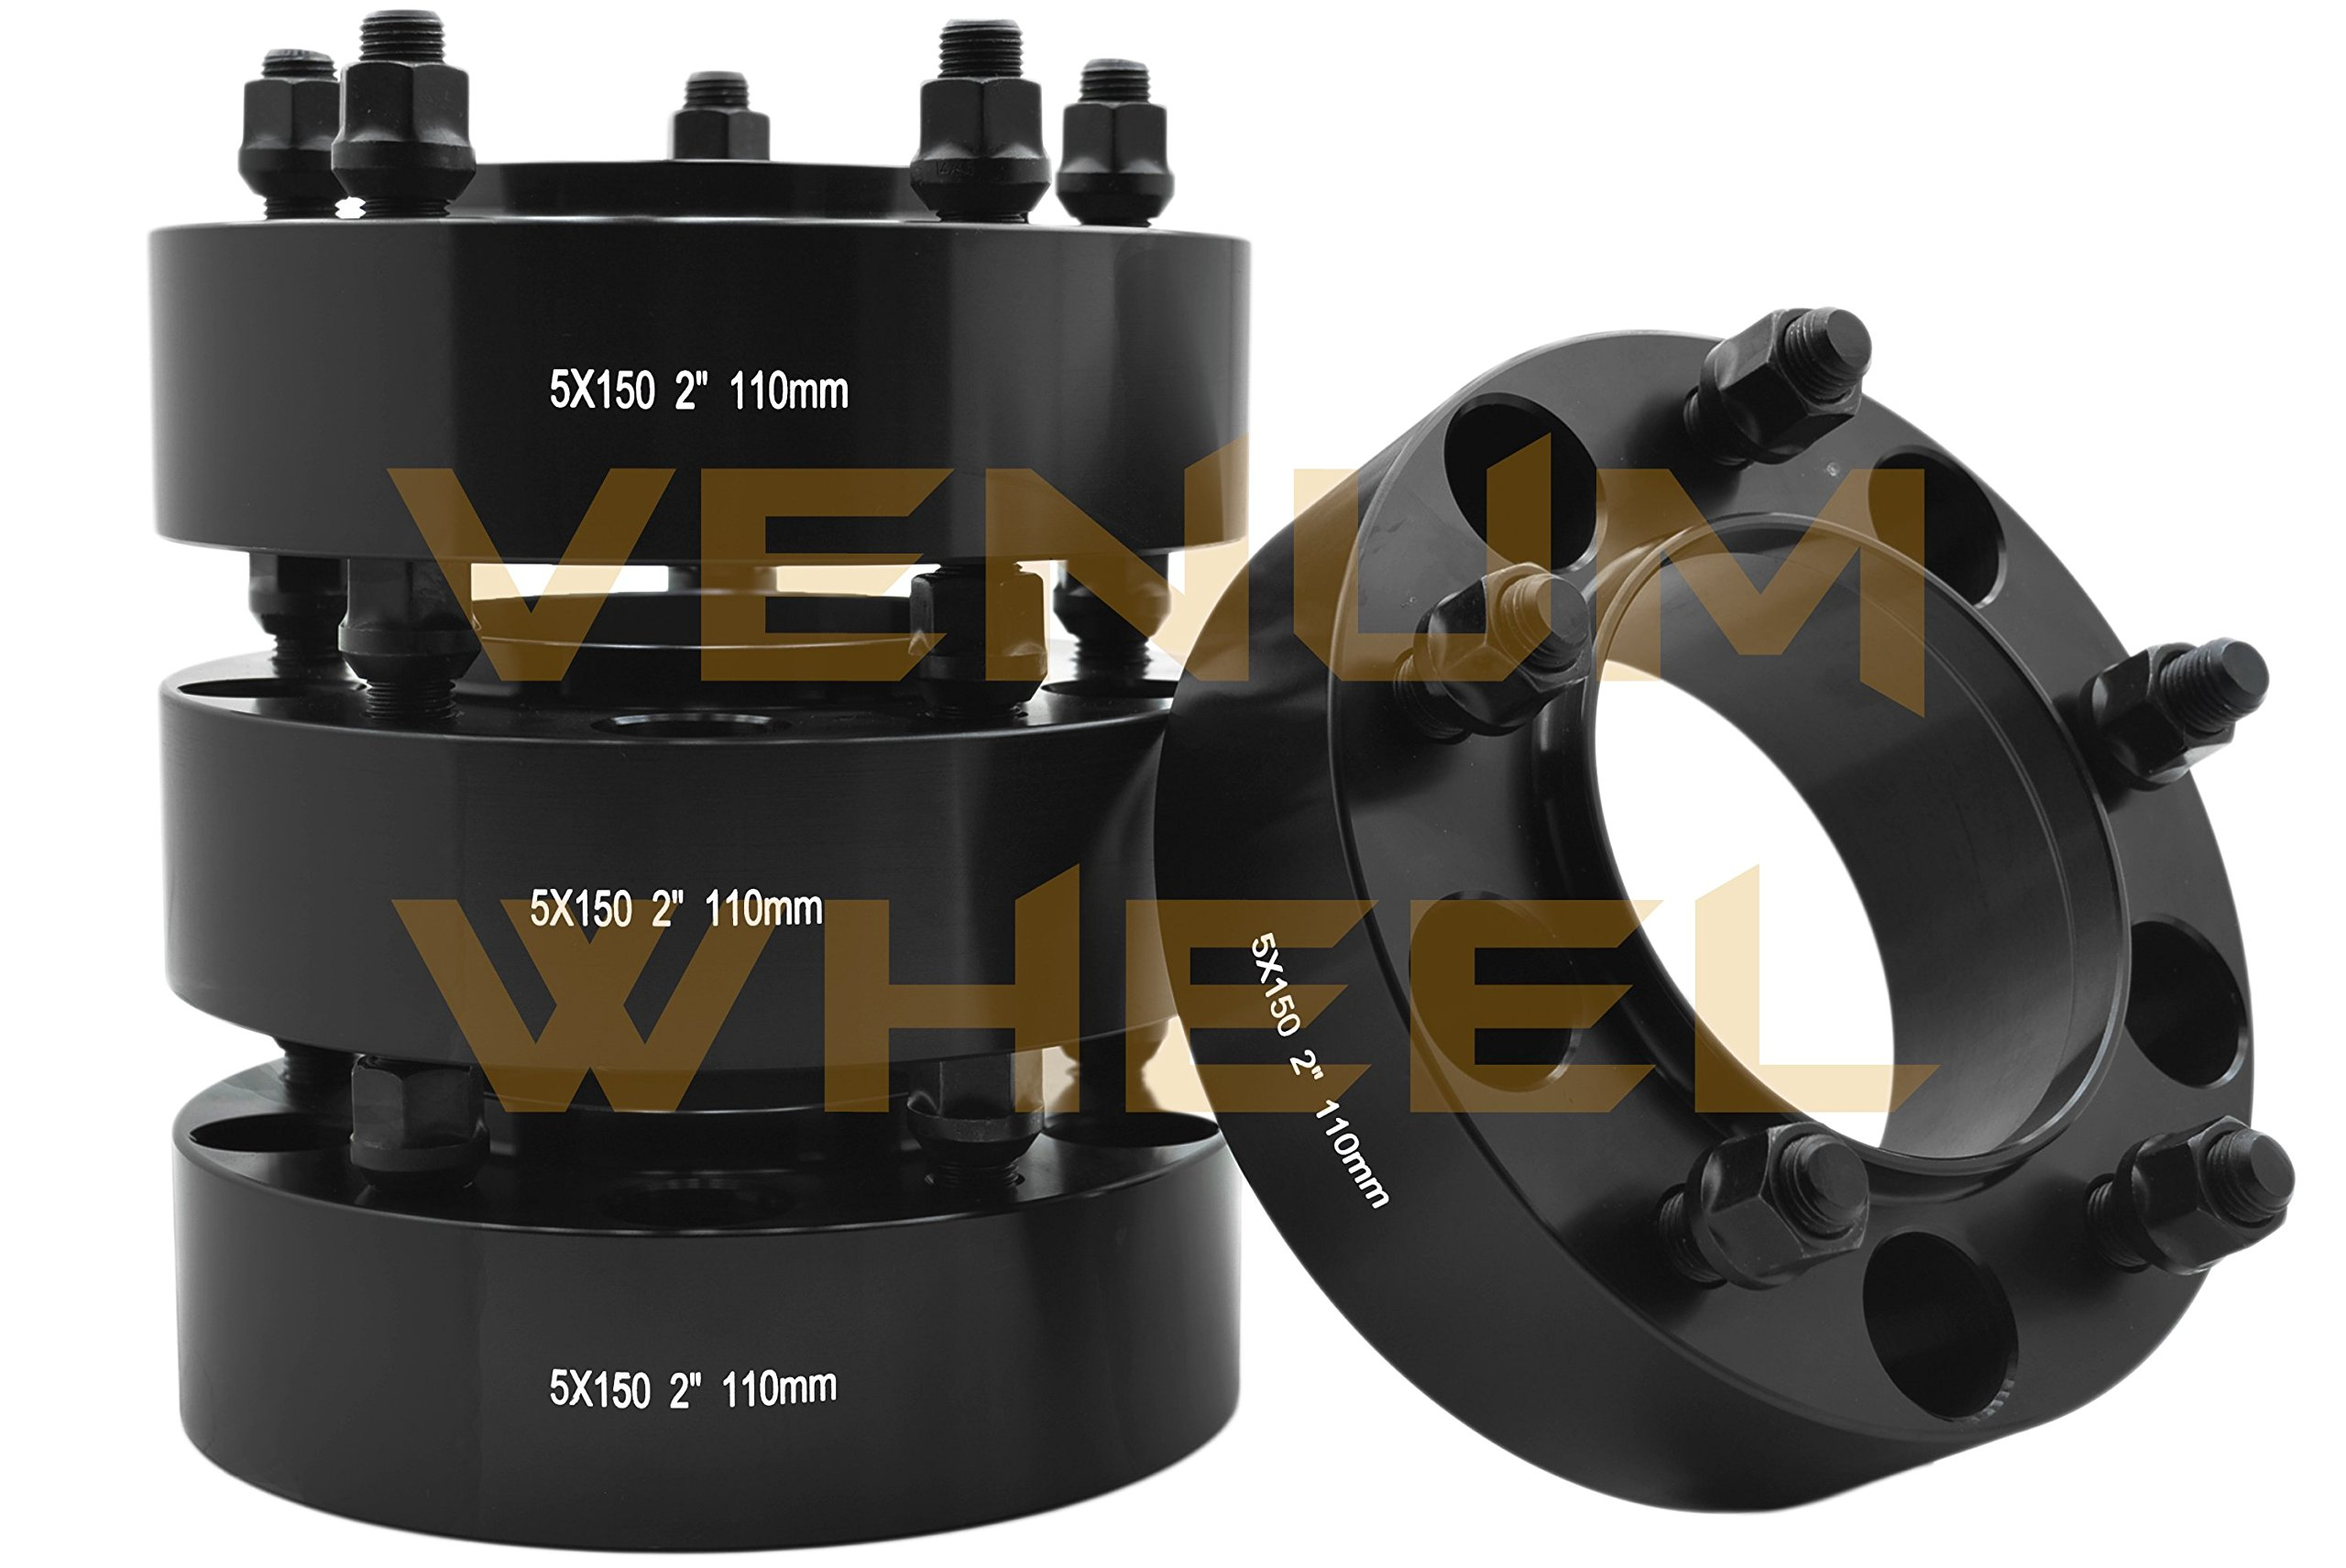 4 Pc 5x150 to 5x150 2'' Thick Black Hubcentric Wheel Spacers Adapter for Toyota Tundra 2007-2016 Hub Bore 110mm 14x1.5 Studs 6061 T6 Billet Aluminum (07-) Black